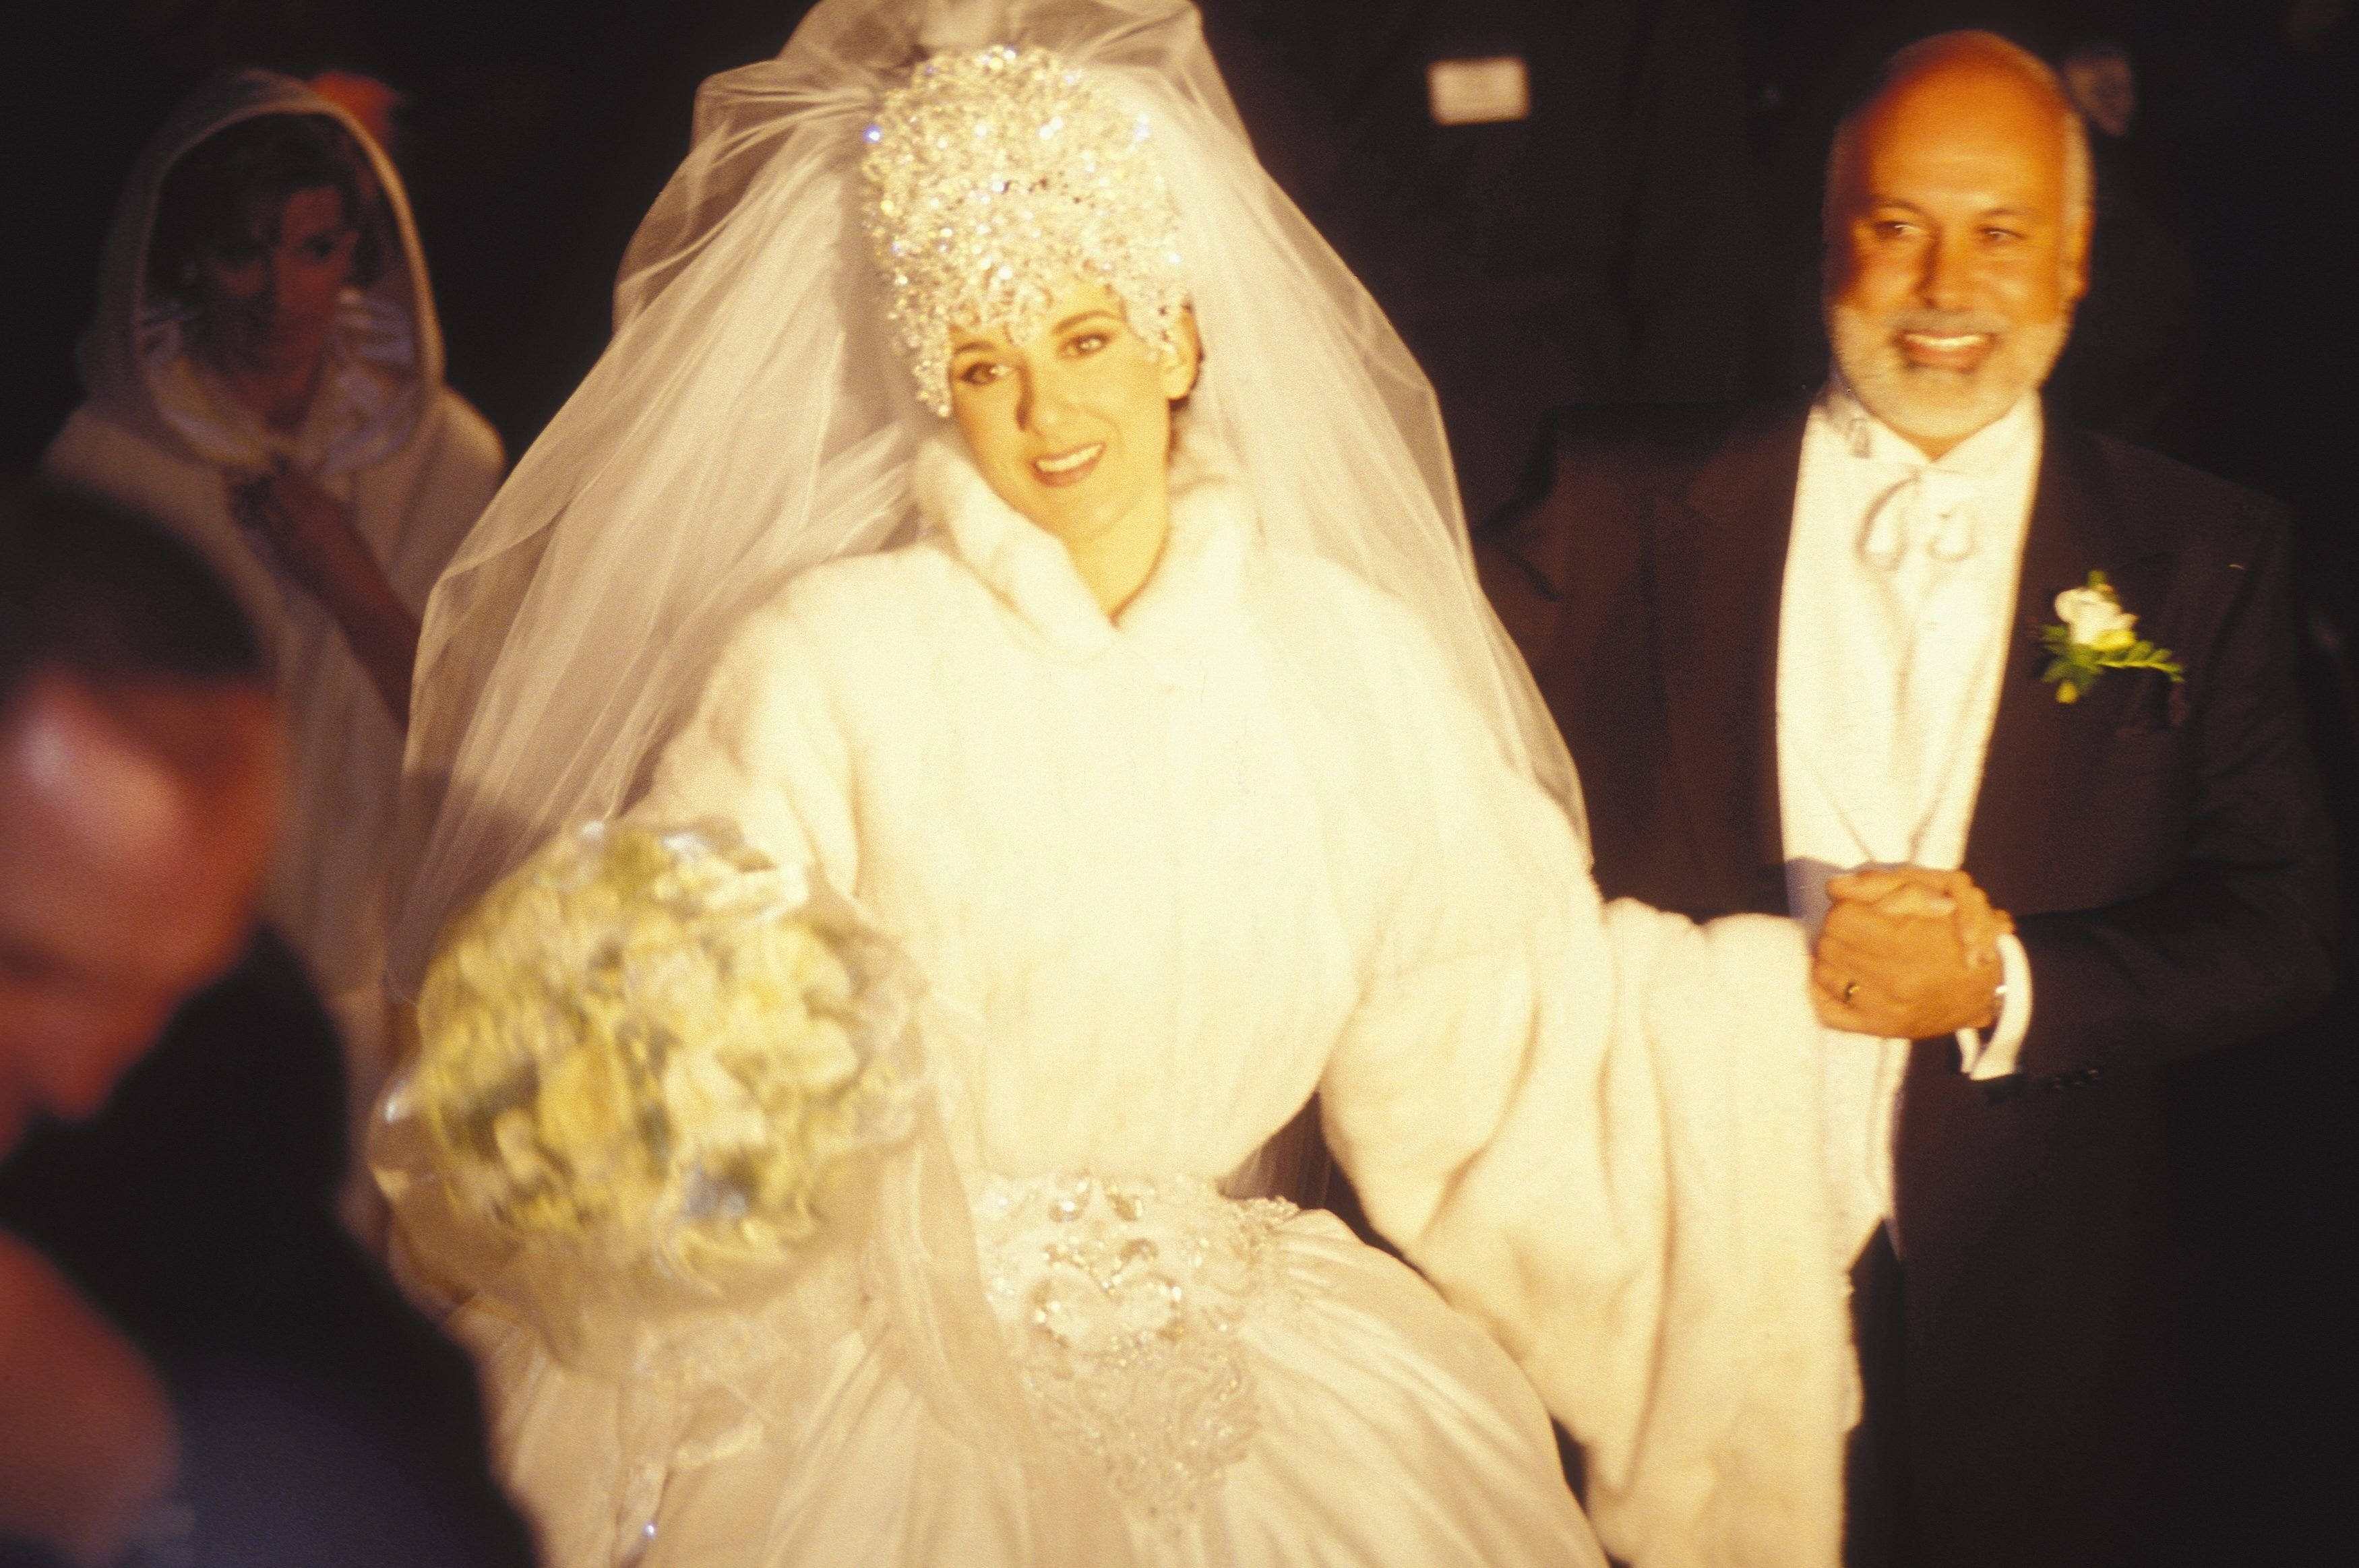 Celine Dion's wedding in Montreal, Canada on December 15, 1994 | Source: Getty Images